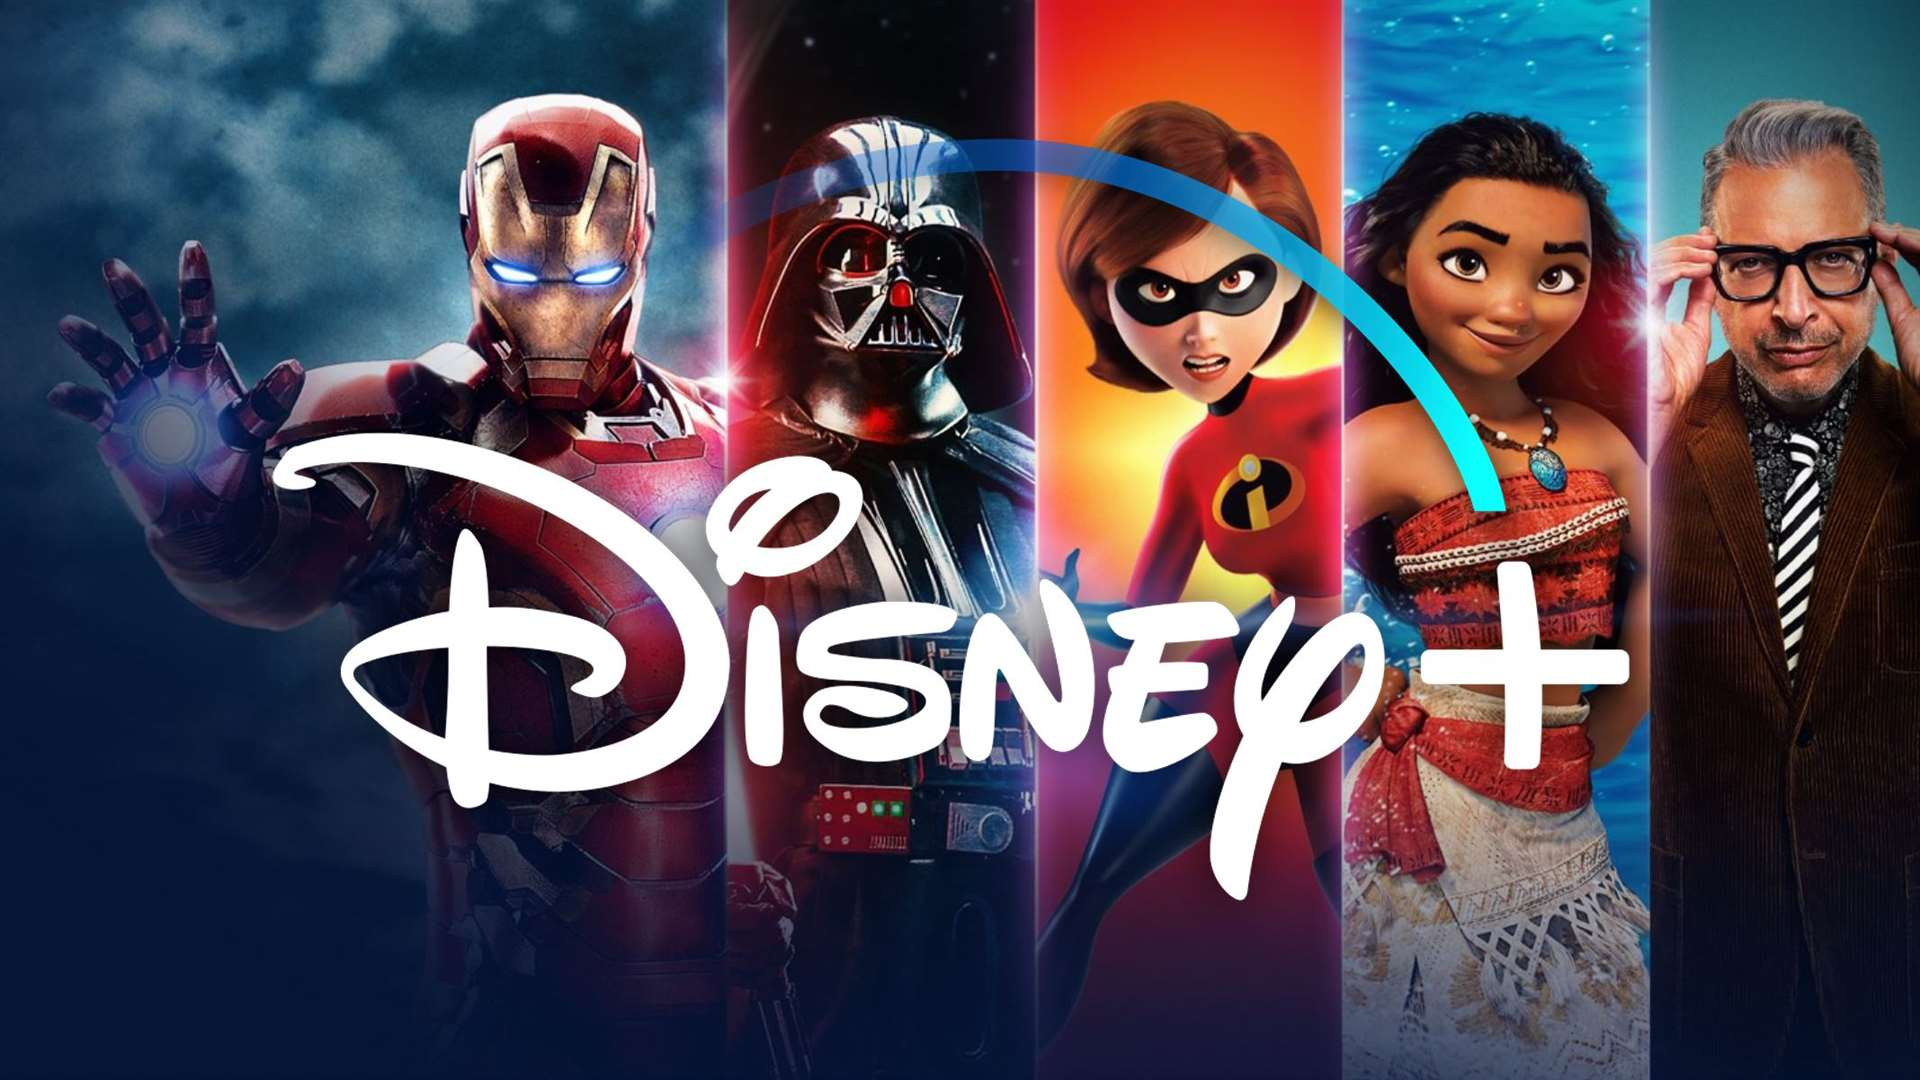 Disney+ has launched in the UK